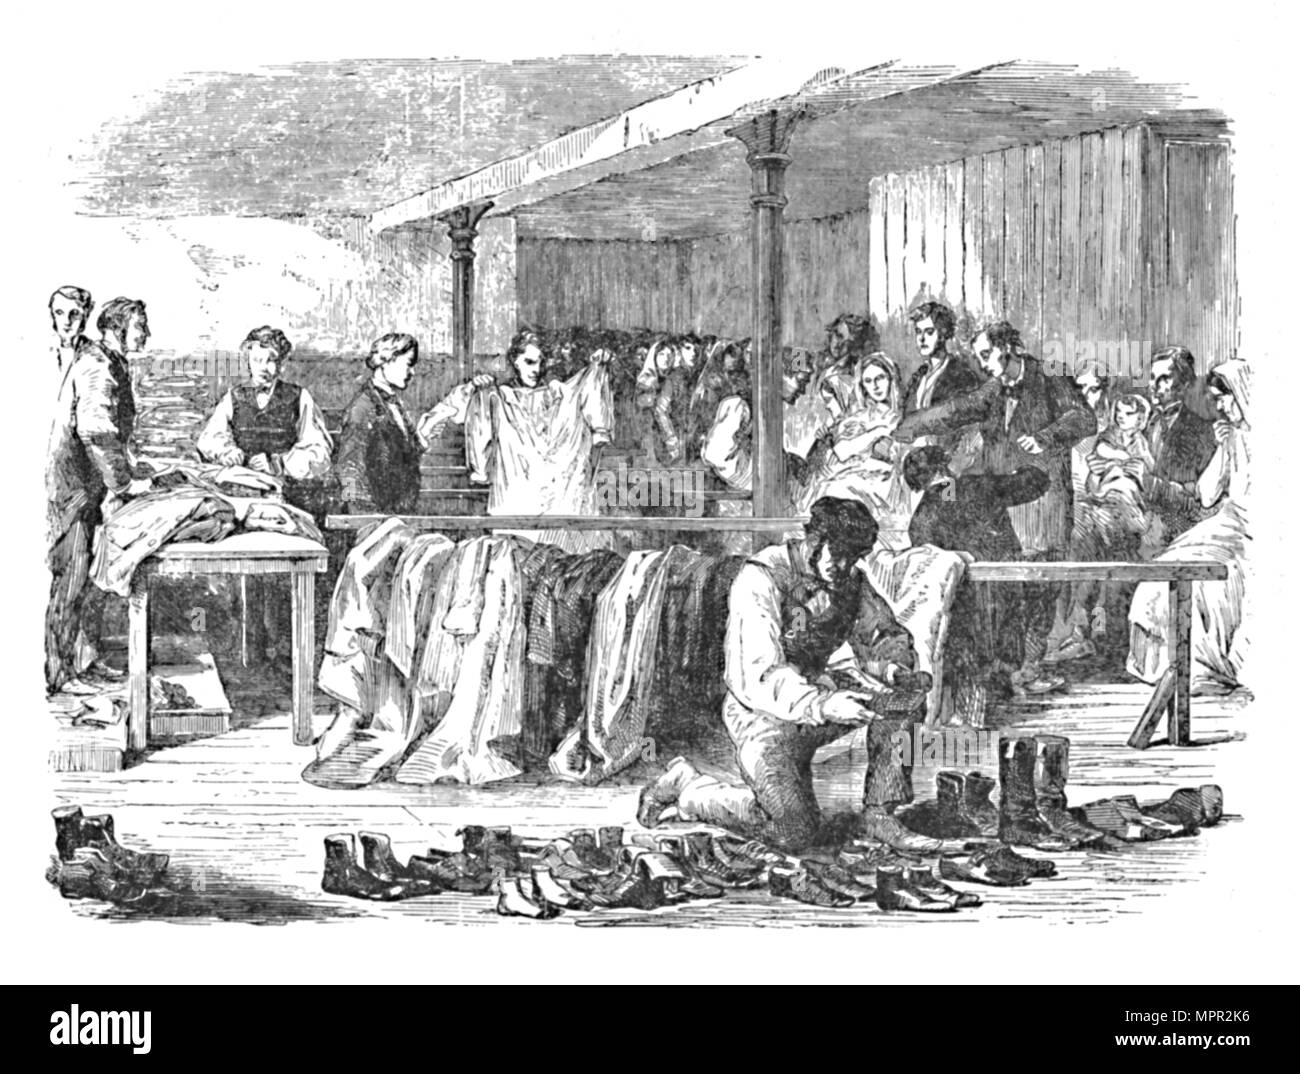 'The Cotton Famine: Distribution of Clothes to Operatives, Manchester', 1904. Artist: Unknown. - Stock Image